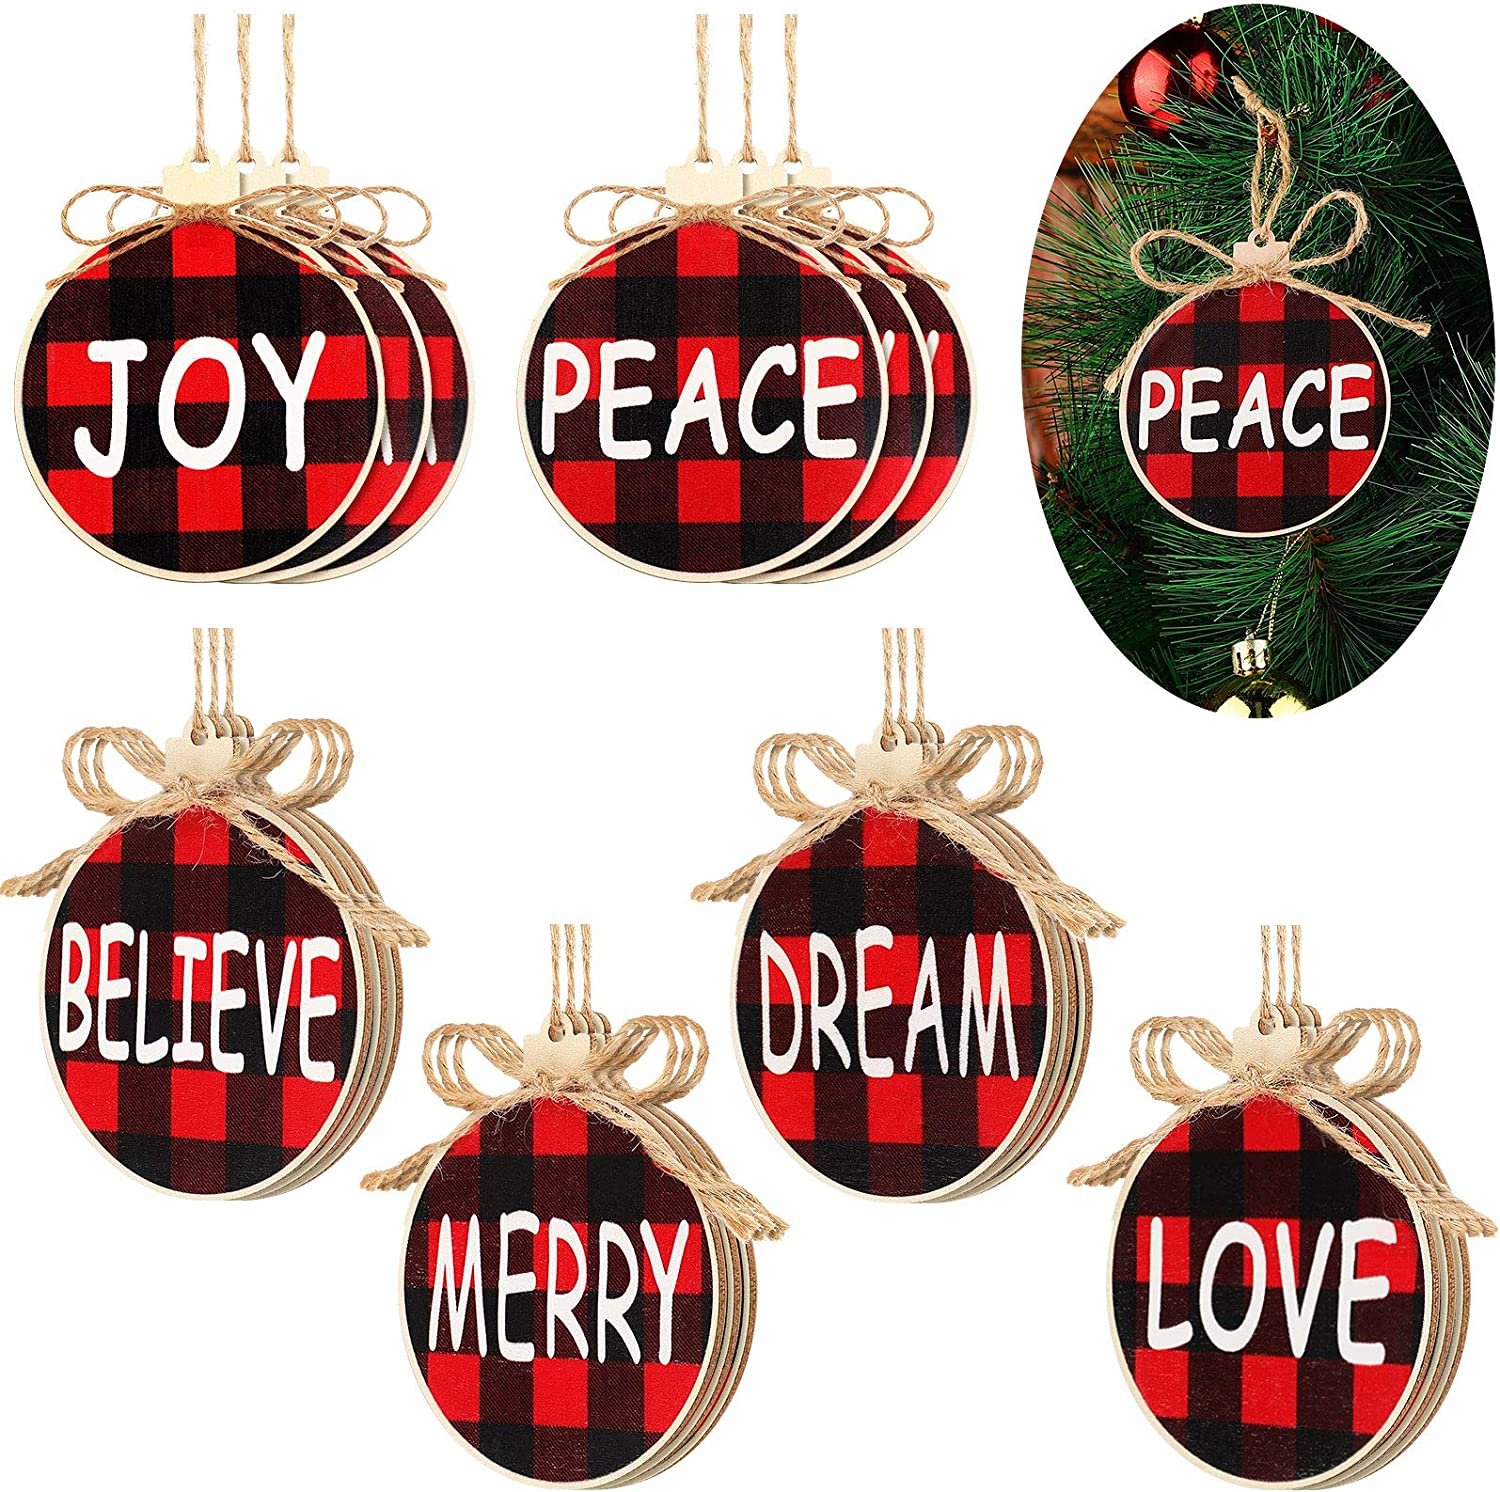 18 Pieces Christmas Wooden Ornaments Set Buffalo Plaid Christmas Hanging Decorations Hanging Crafts Wooden Tags for Xmas Trees Doors Bells 6 Styles Joy Believe Peace Merry Dream Love